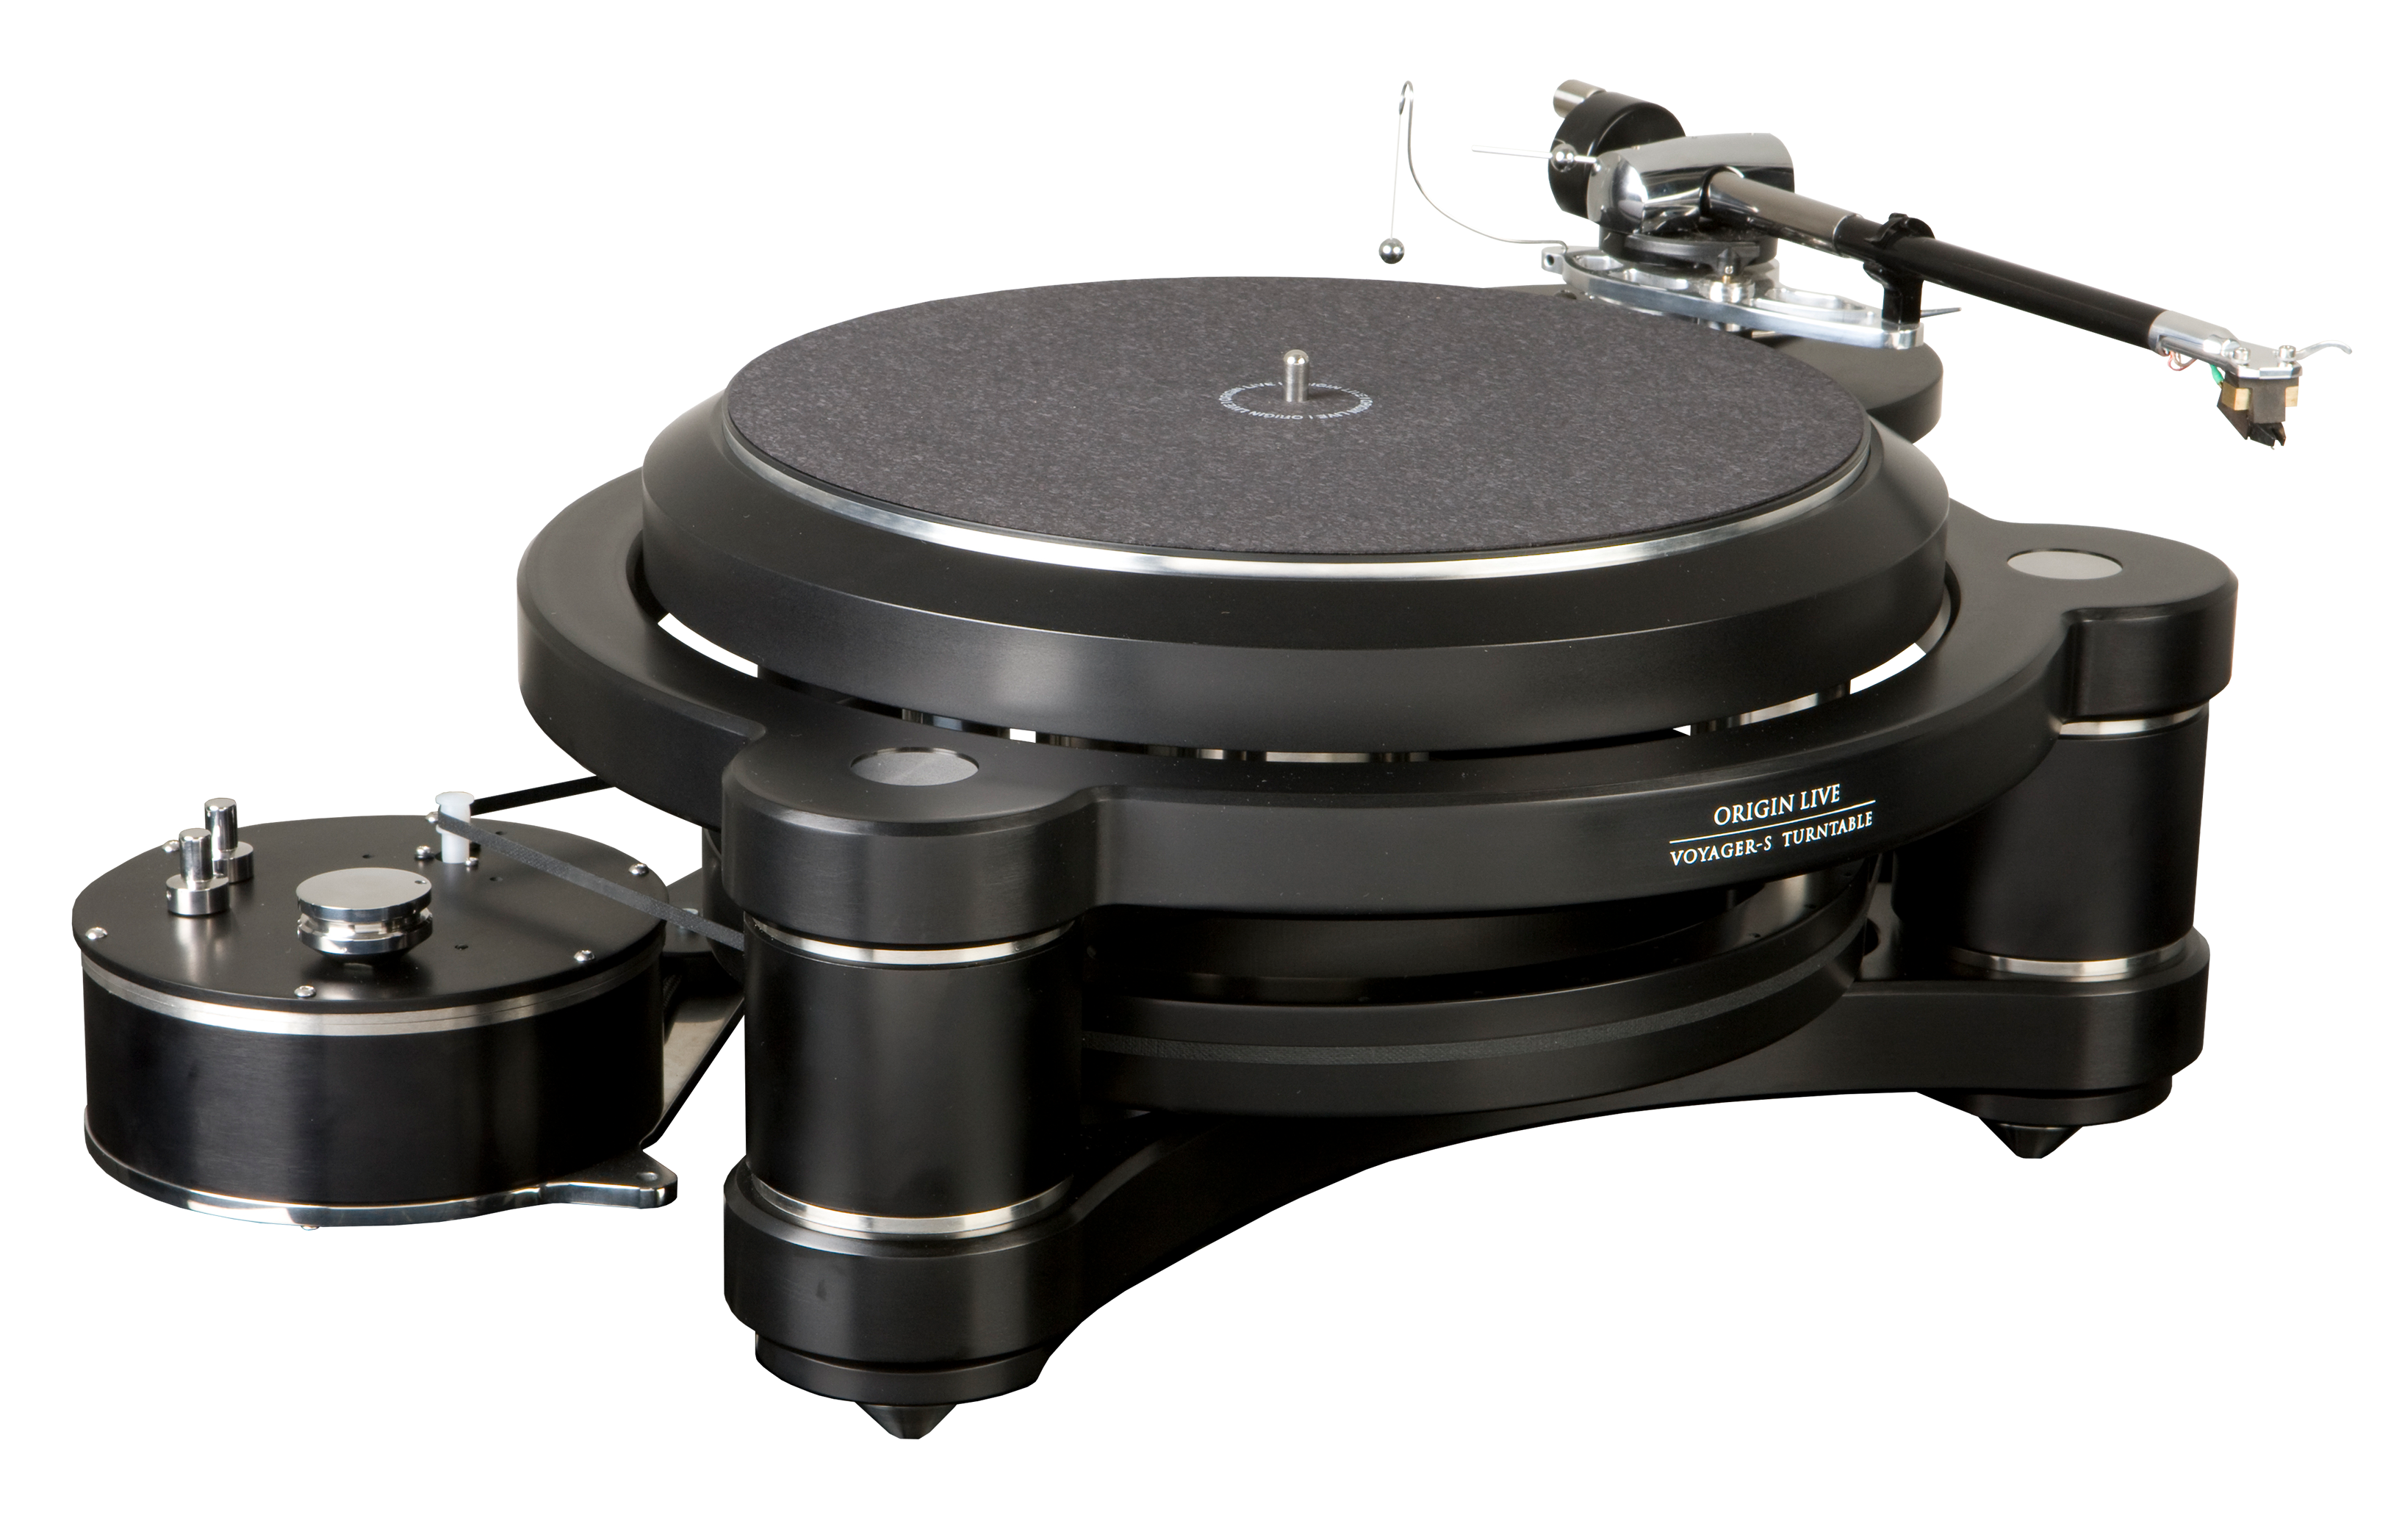 Origin Live Voyager Turntable image for Turntable hi fi product range